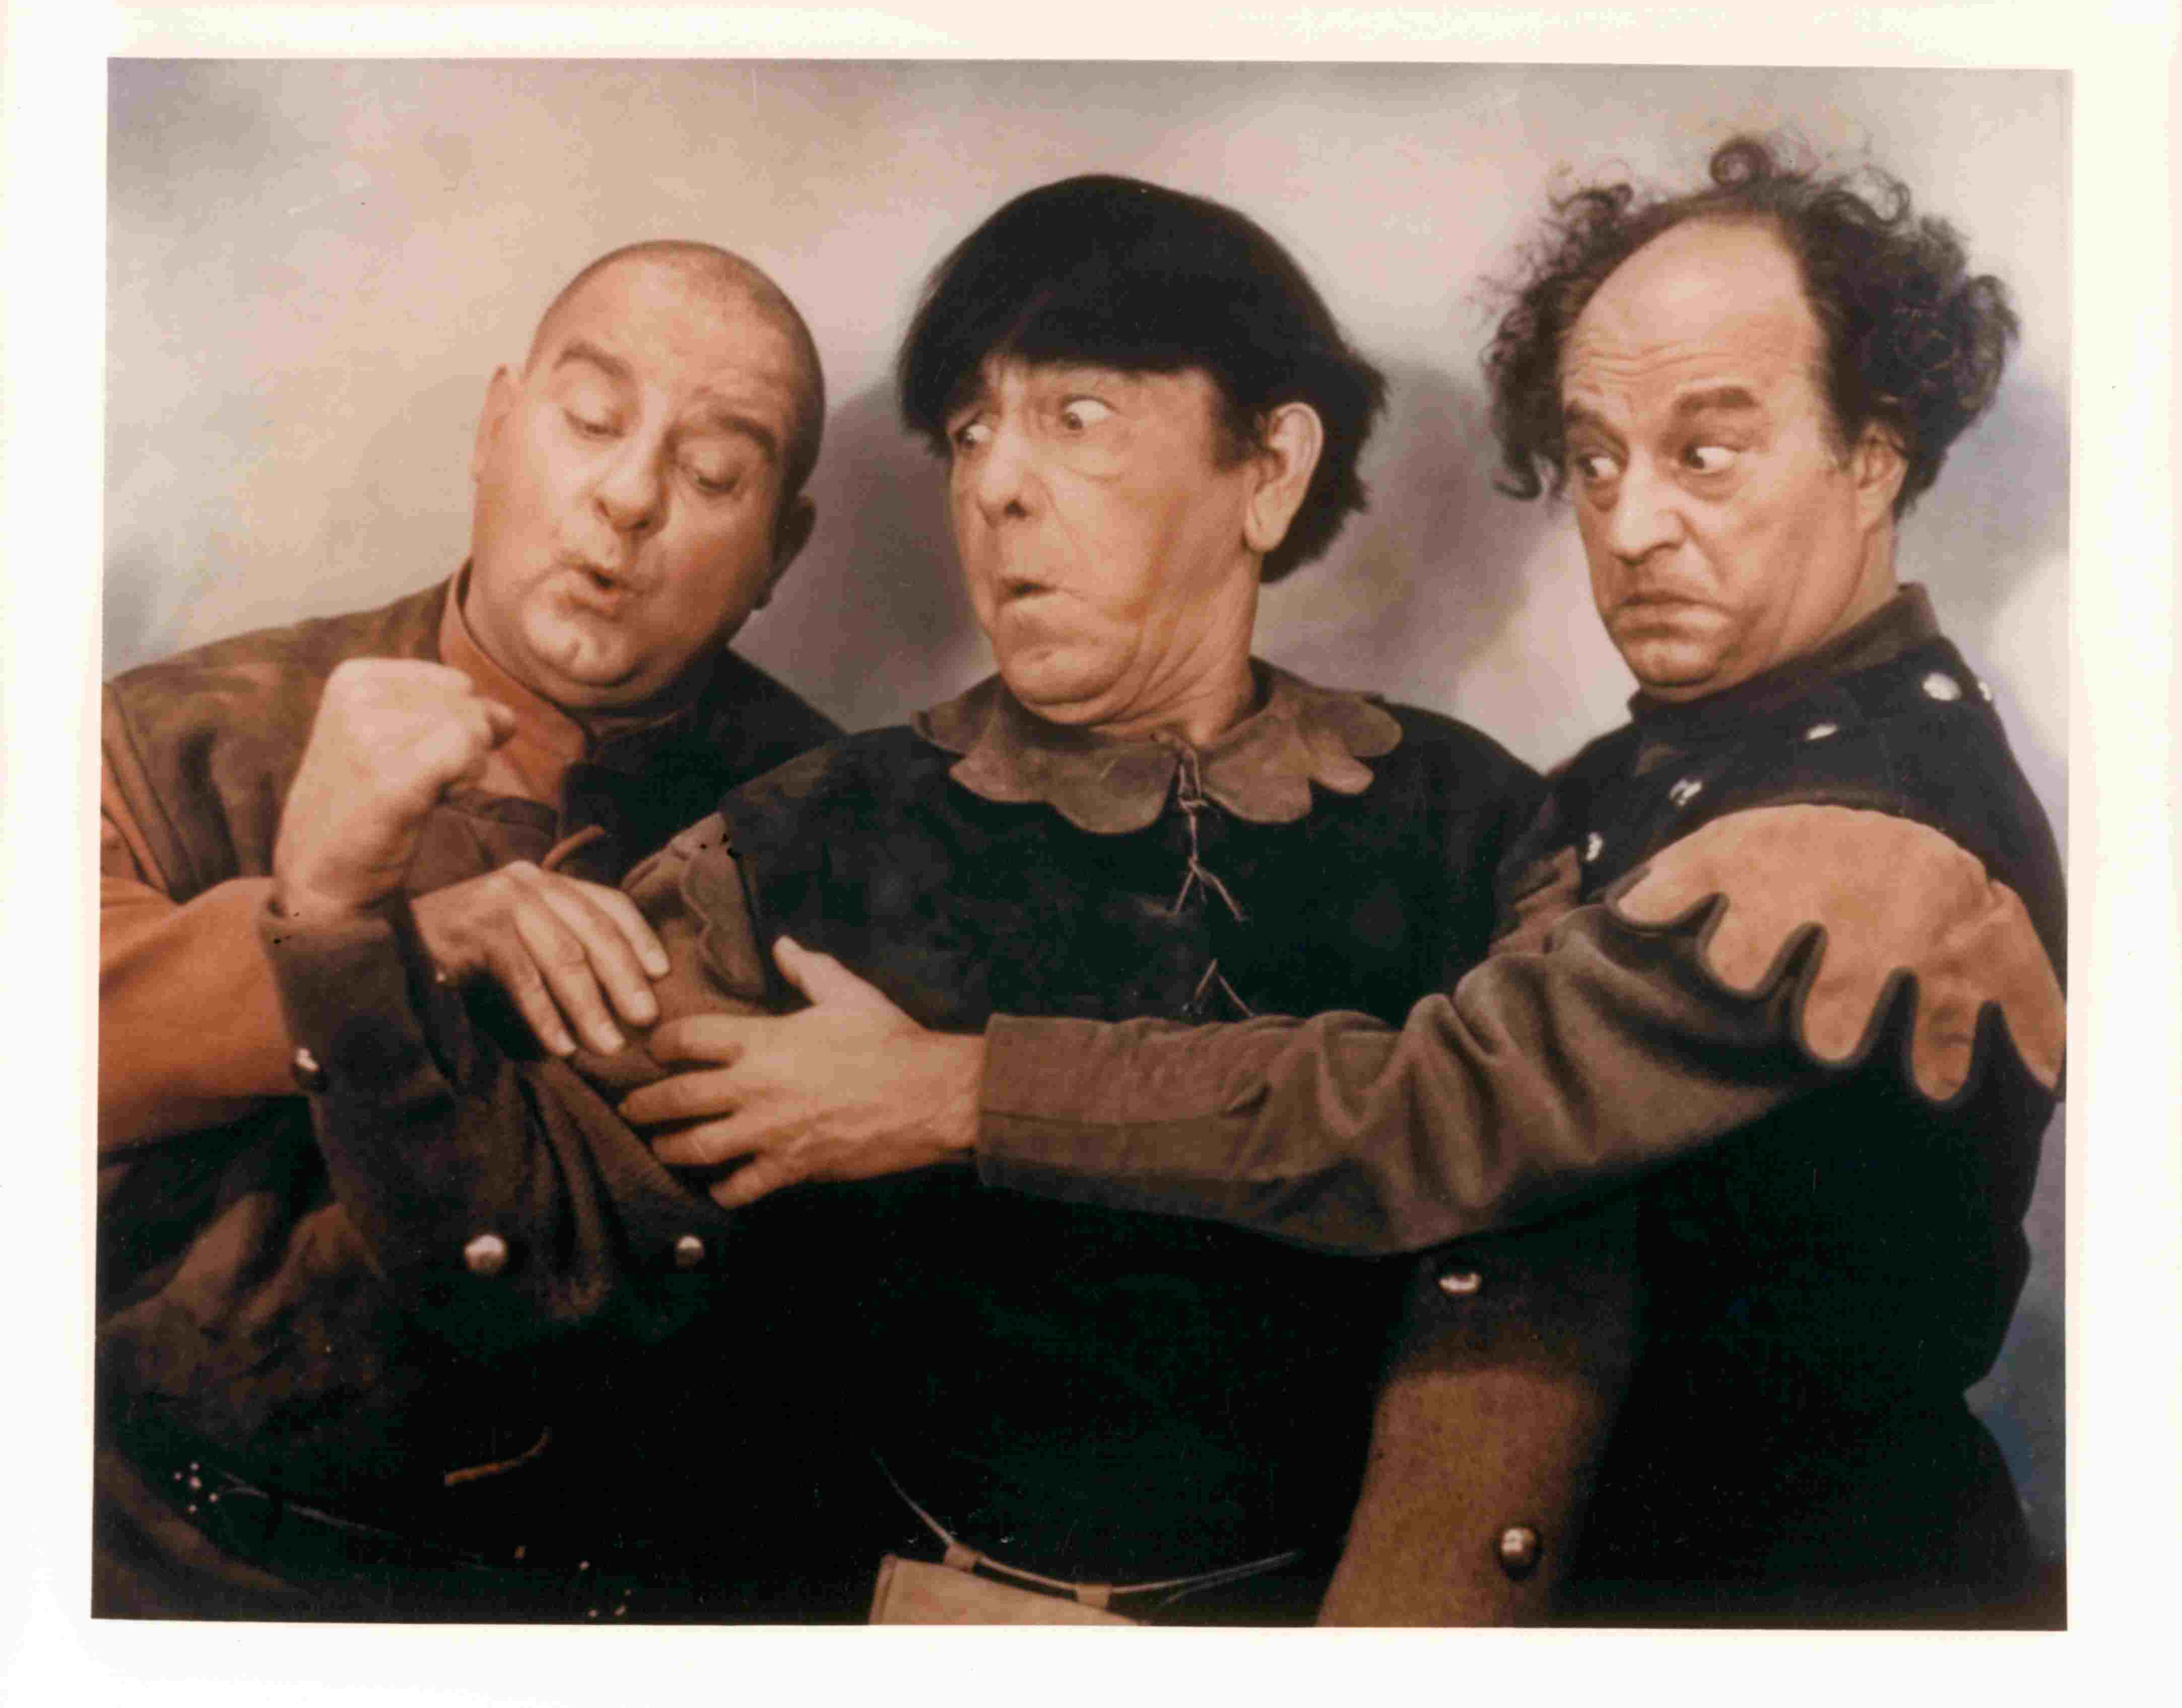 Joe DeRita And Larry Fine In 'Snow White And The Three Stooges'